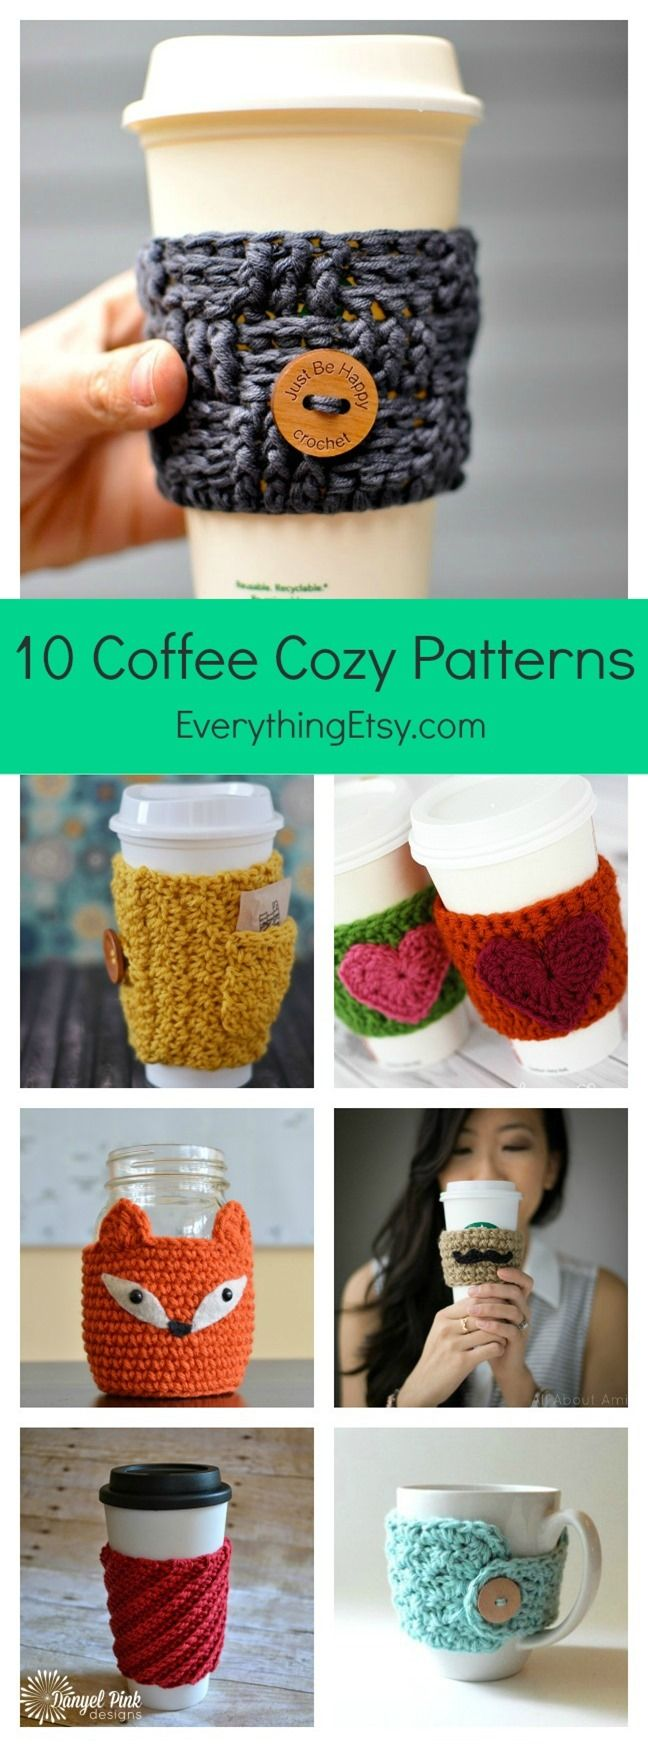 10 Free Coffee Cozy Crochet Patterns Looking for a quick DIY gift idea? Want to use up some of your pretty yarn scraps? These free coffee…